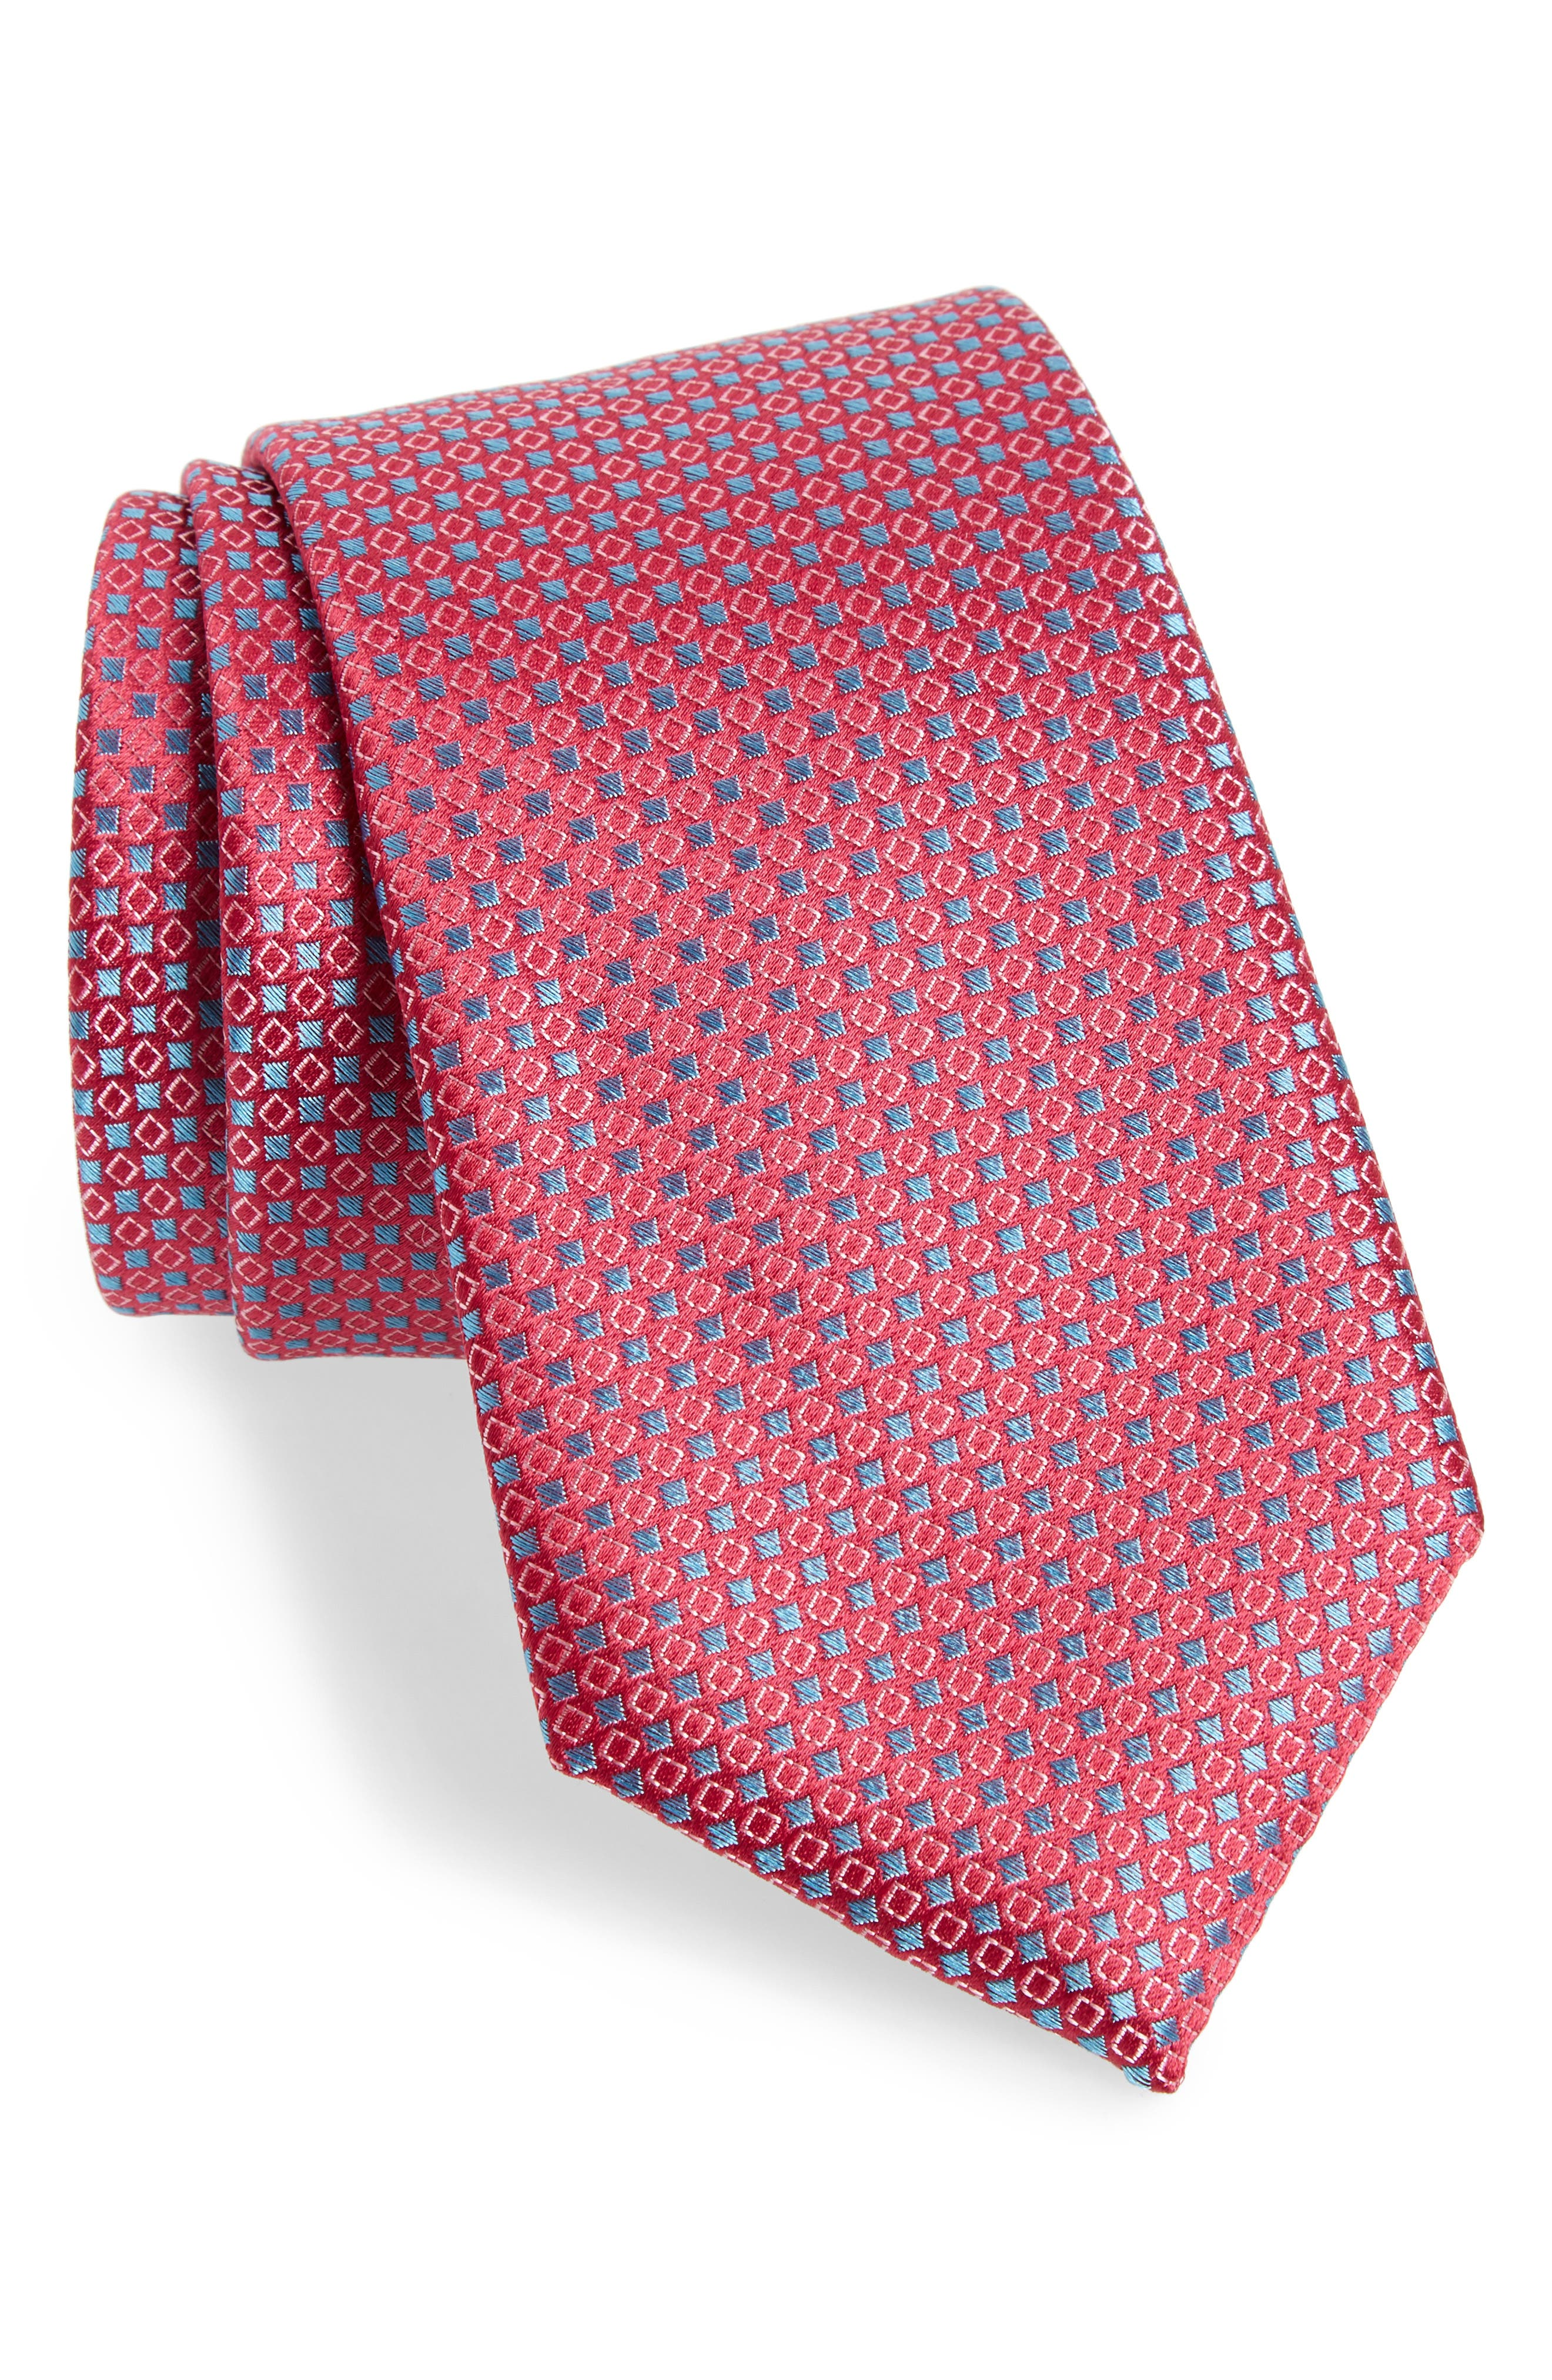 Alternate Image 1 Selected - Nordstrom Men's Shop Chad Microdot Silk Tie